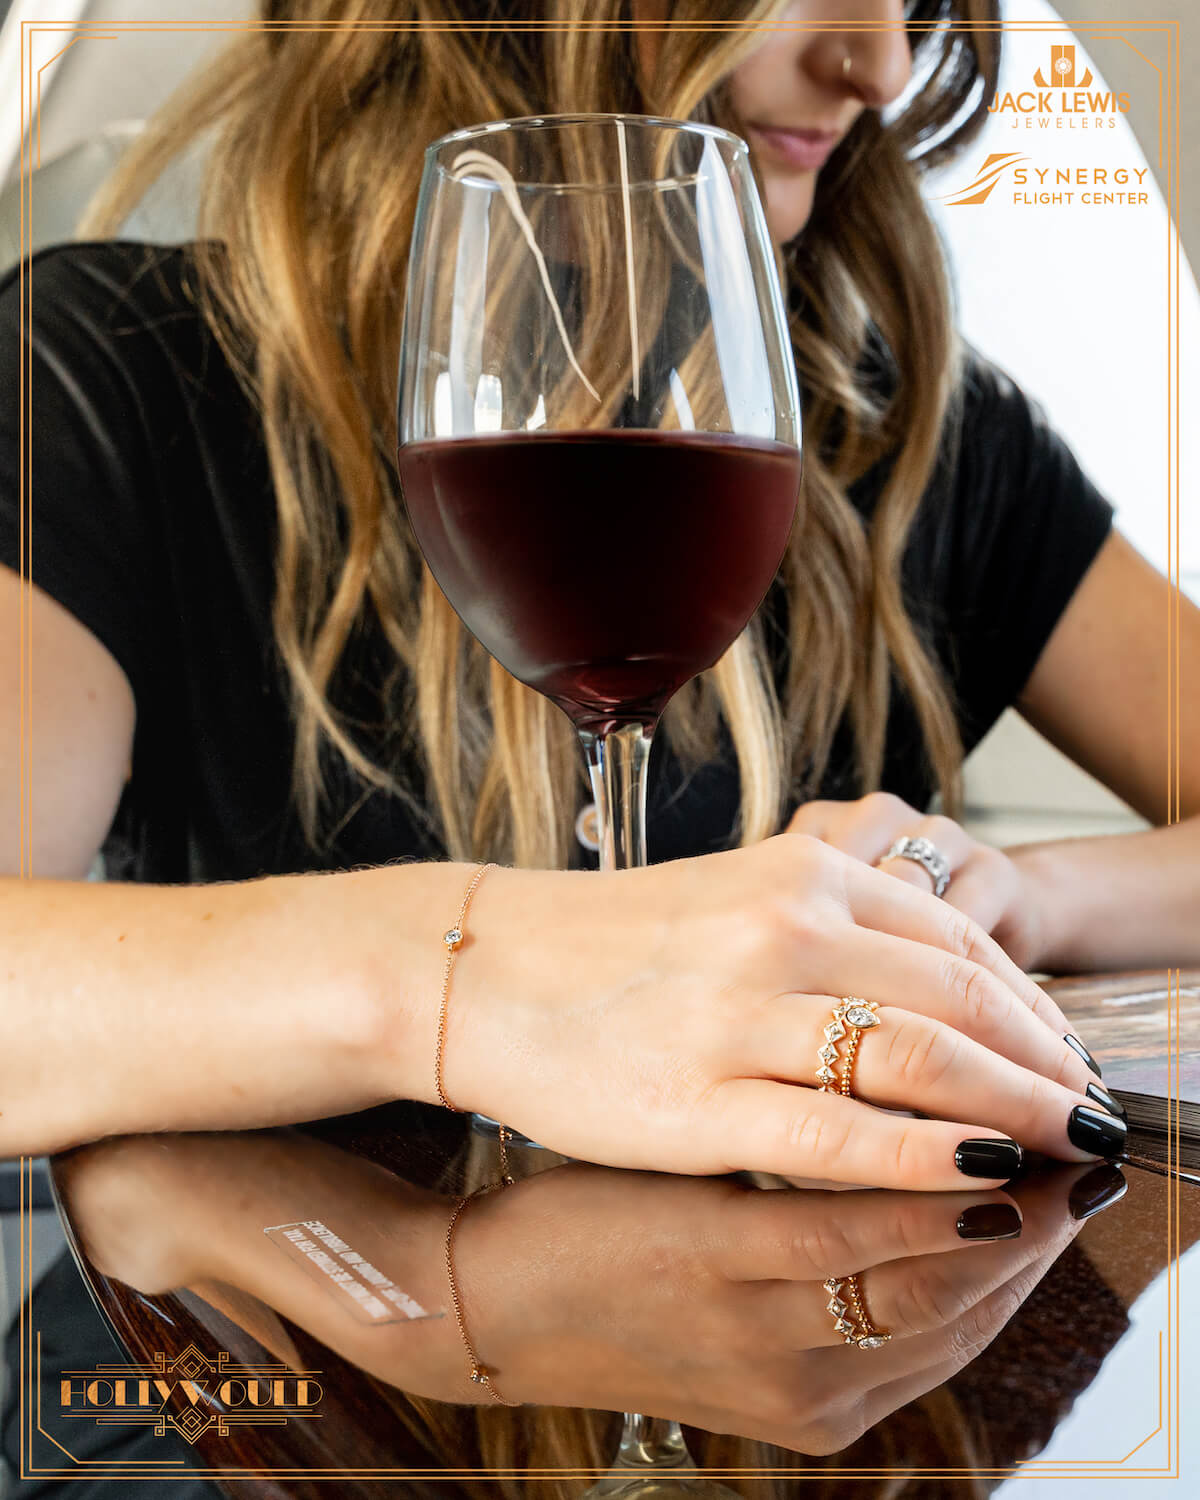 A young woman with long brown hair is reading a magazine from her airplane seat alongside a glass of red wine. This is a close up of her hands where you can see Debeers Forevermark jewelry including a diamond bracelet and two diamond rings.